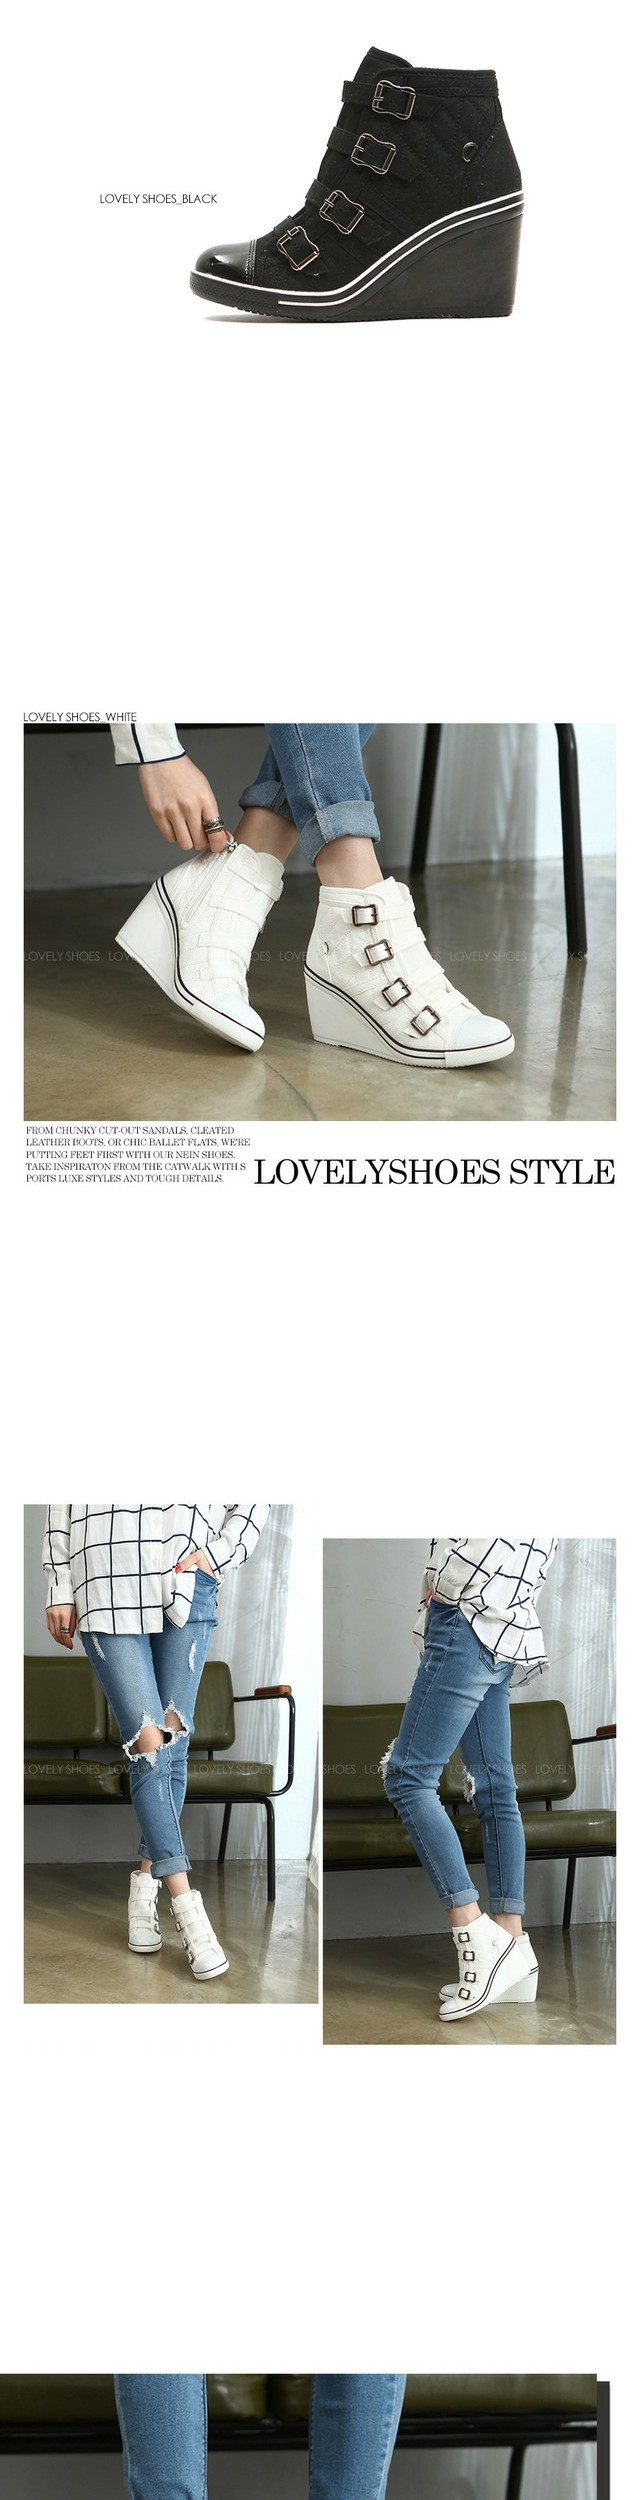 Bebu high-level sneakers 9cm